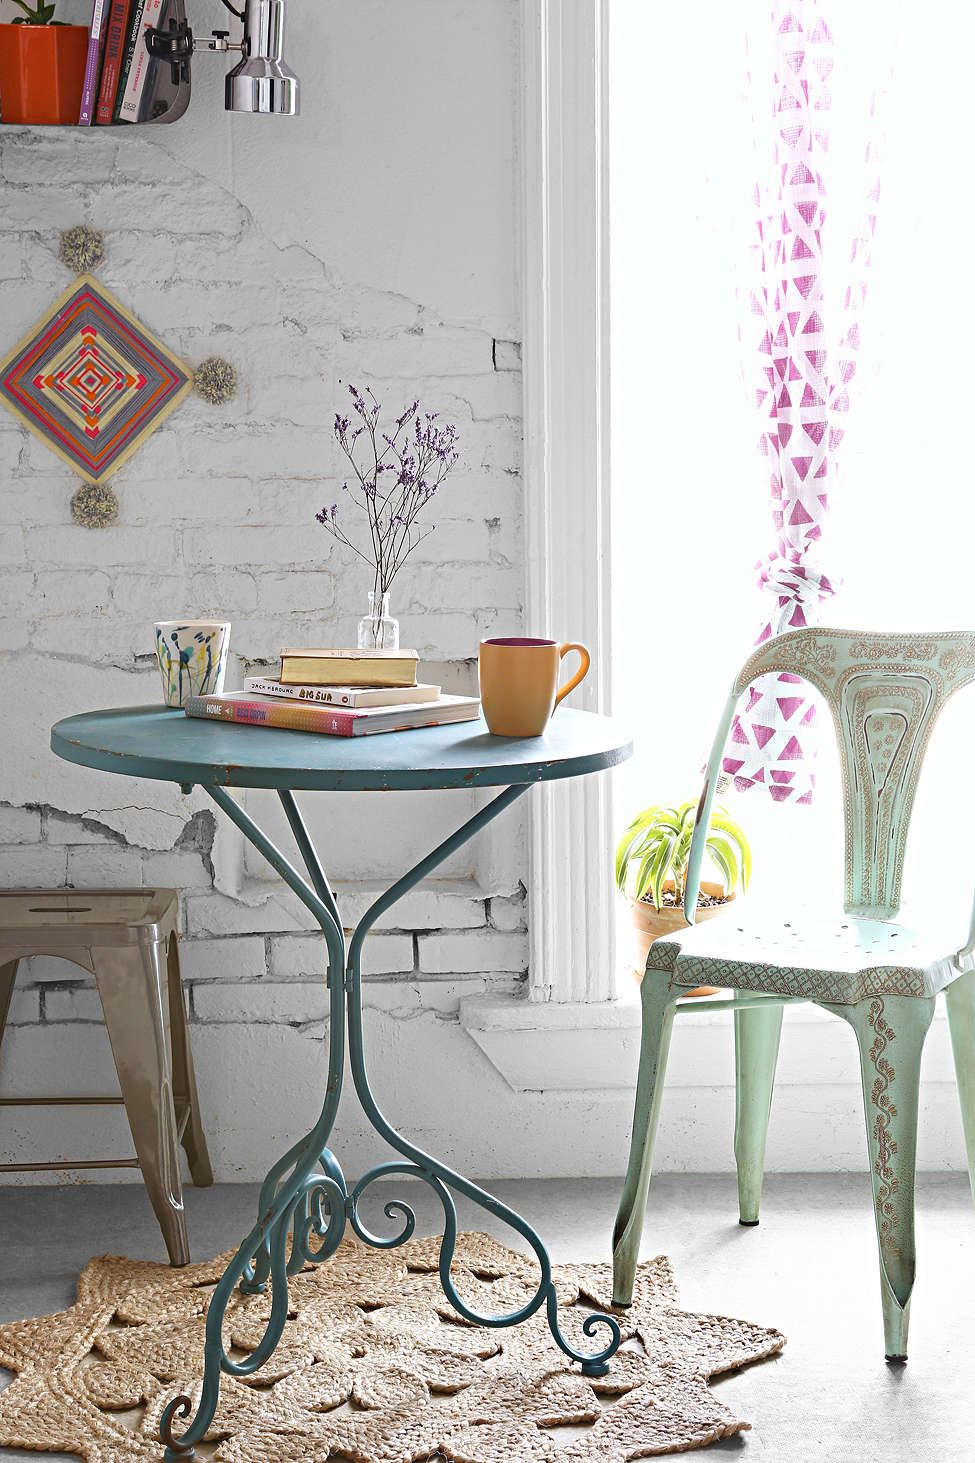 Boho breakfast nook with a bistro table